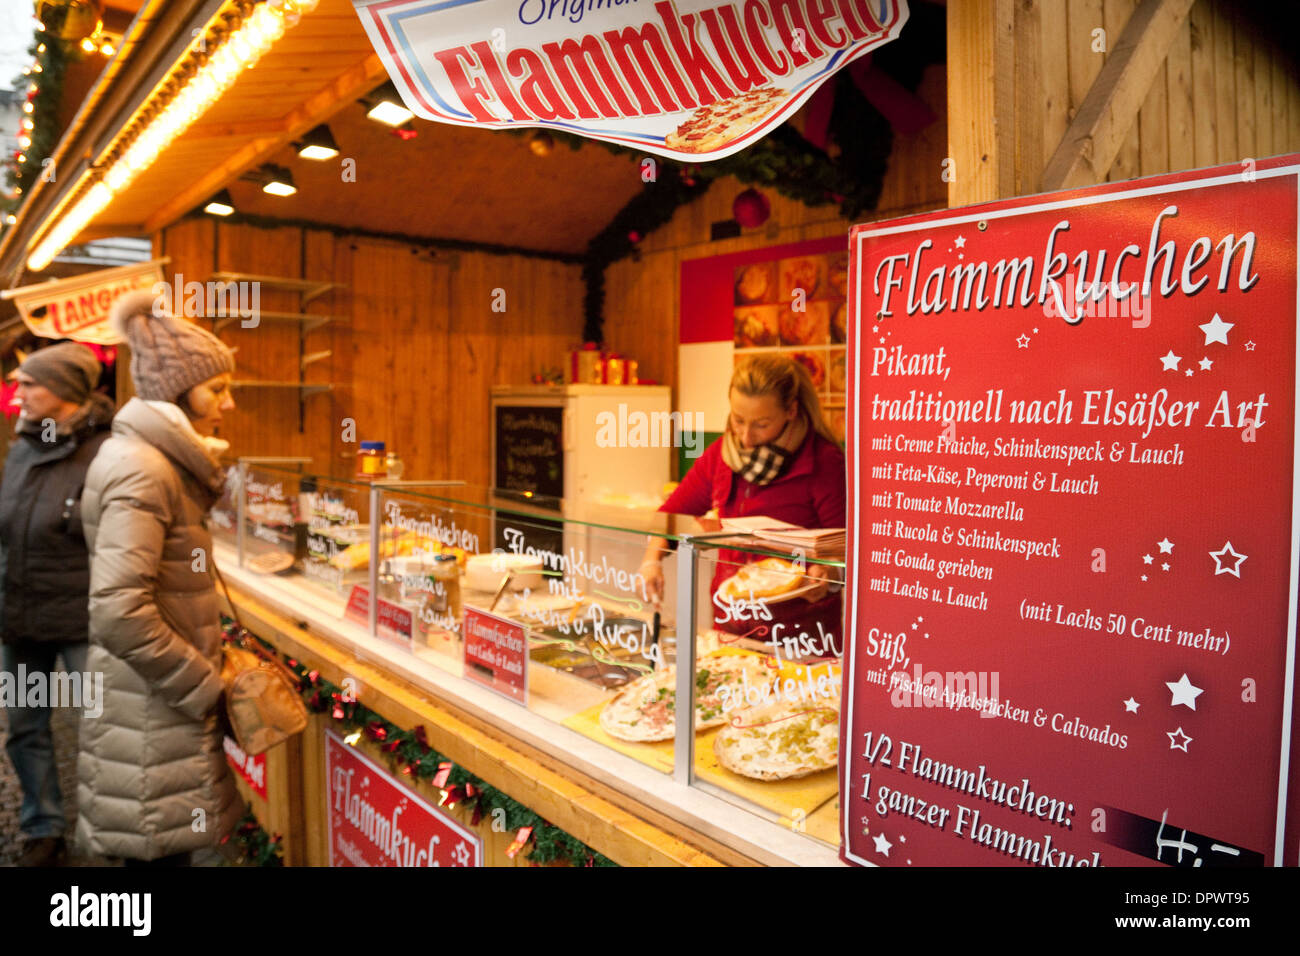 Cologne Christmas markets - a stall making and selling Flammkuchen, also known as Tarte Flambee or Flame Cake, Cologne Germany - Stock Image